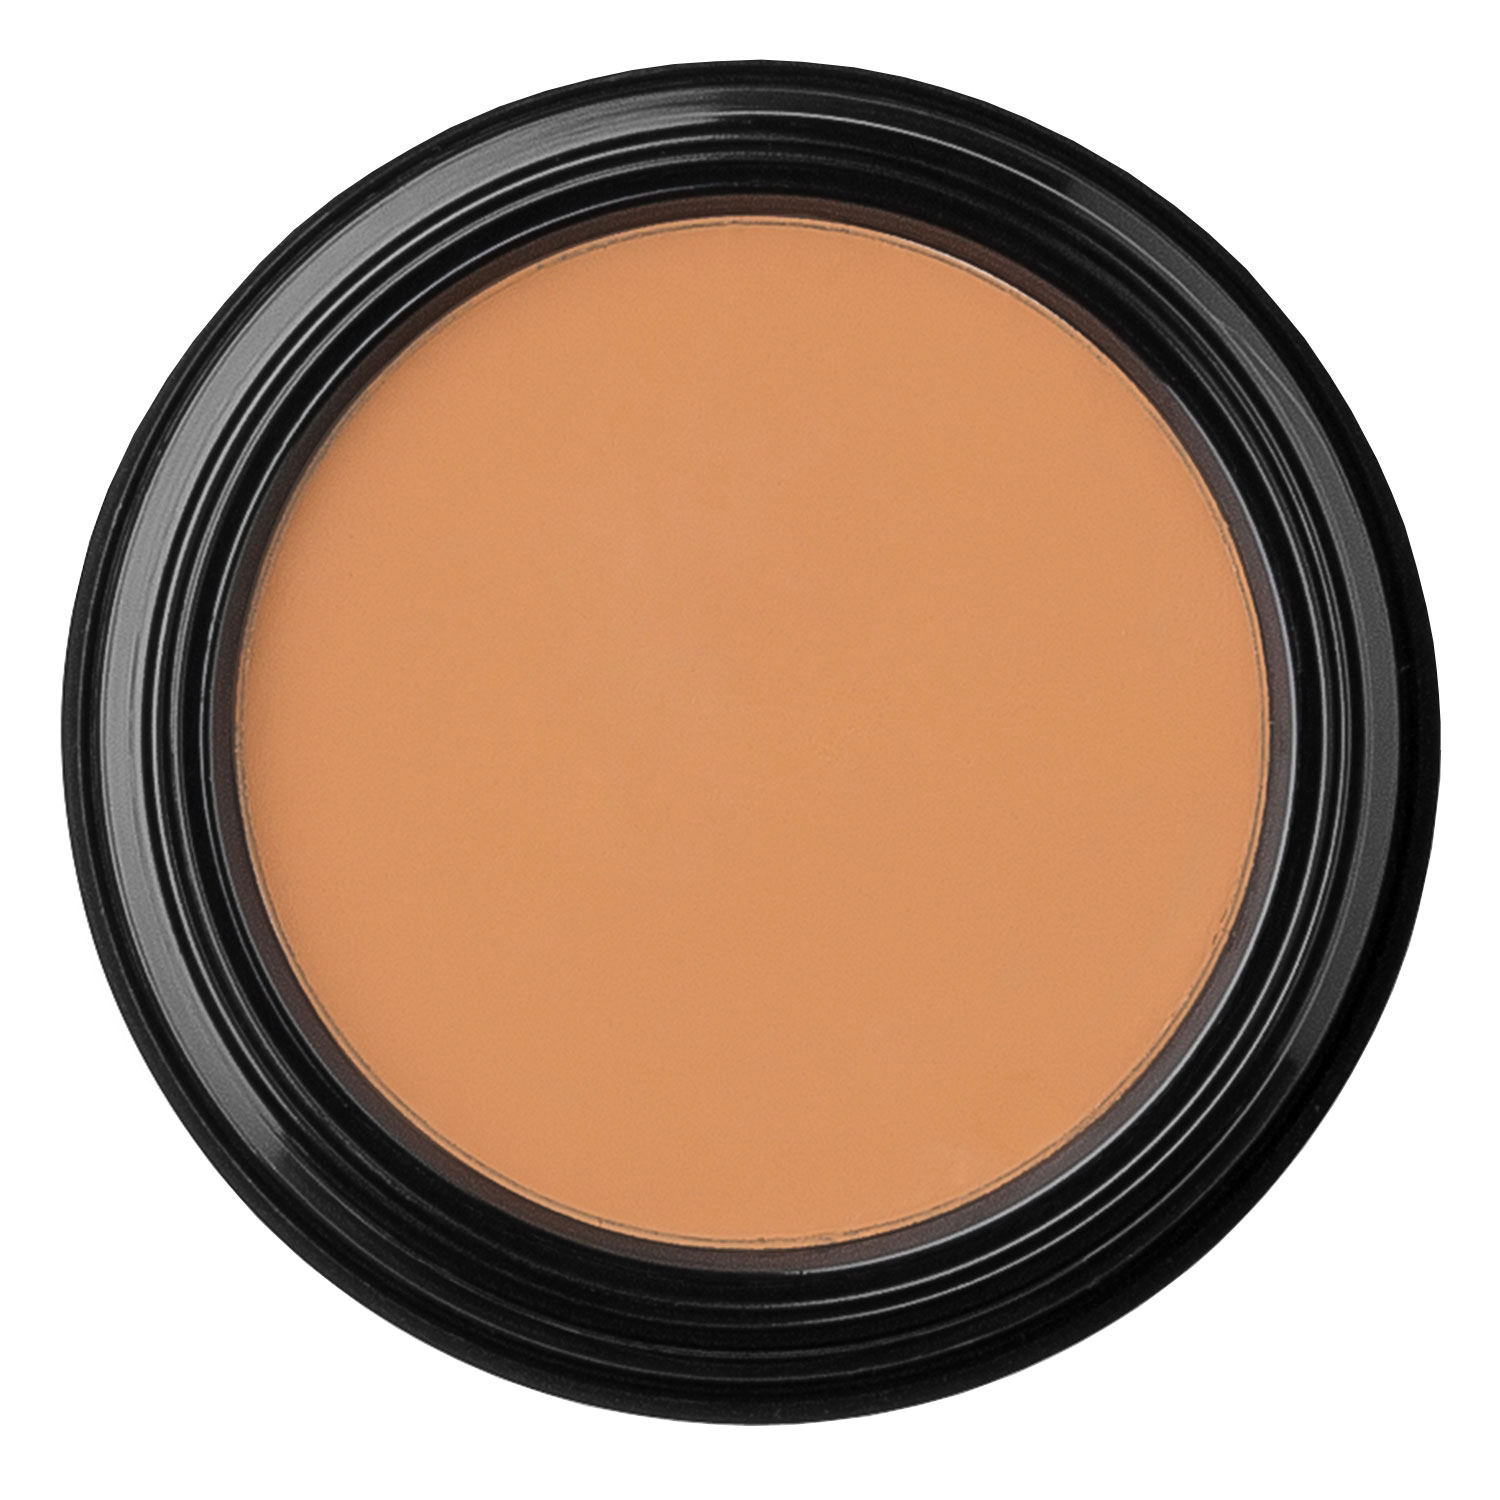 glo Camouflage - Oil free golden-honey - 3.1g